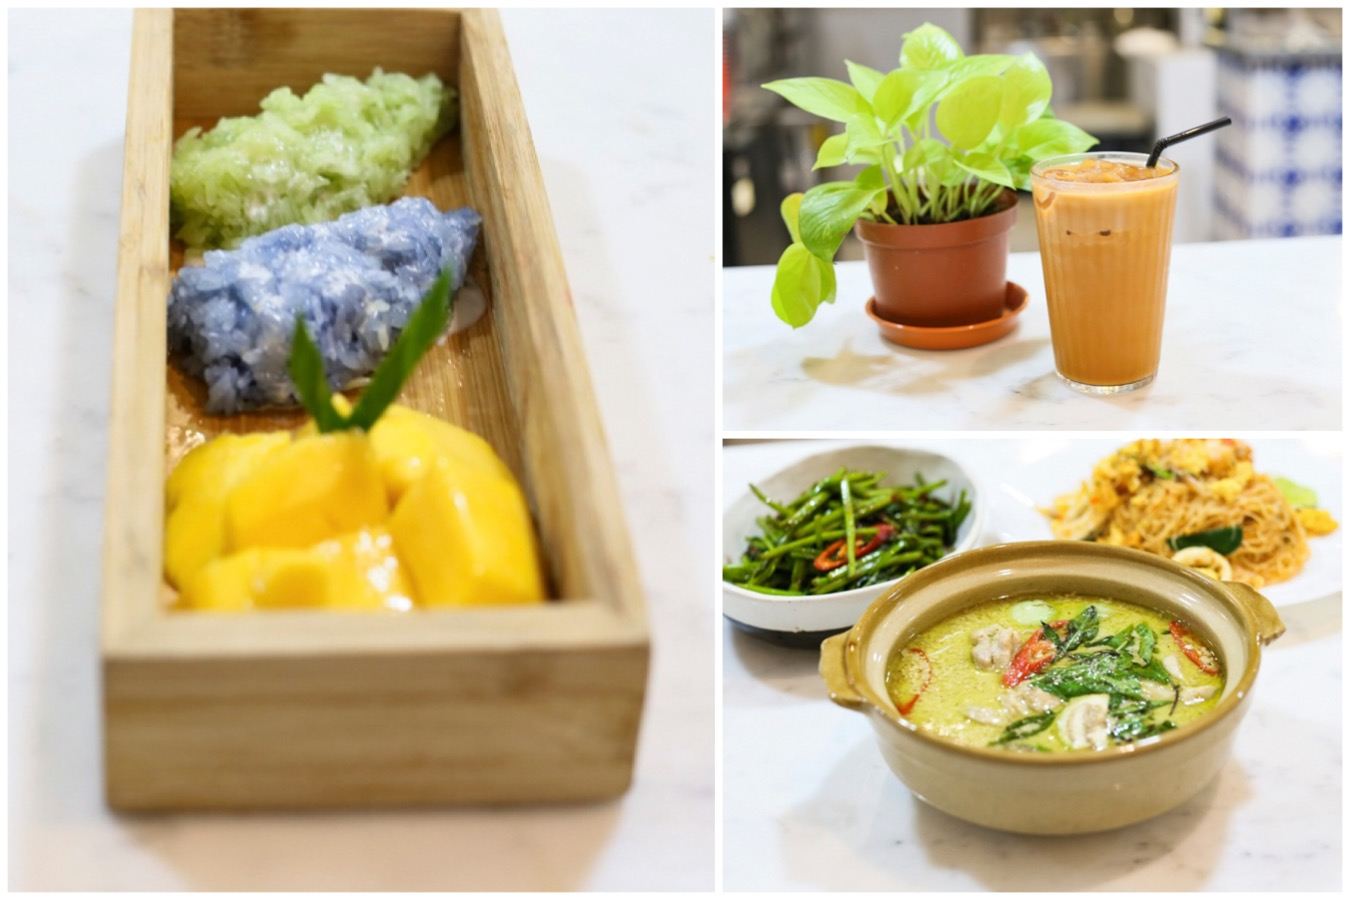 [Closed] The Thai Street Co - Modern Thai Eatery At Alexandra, With Aroy Purple Mango Sticky Rice